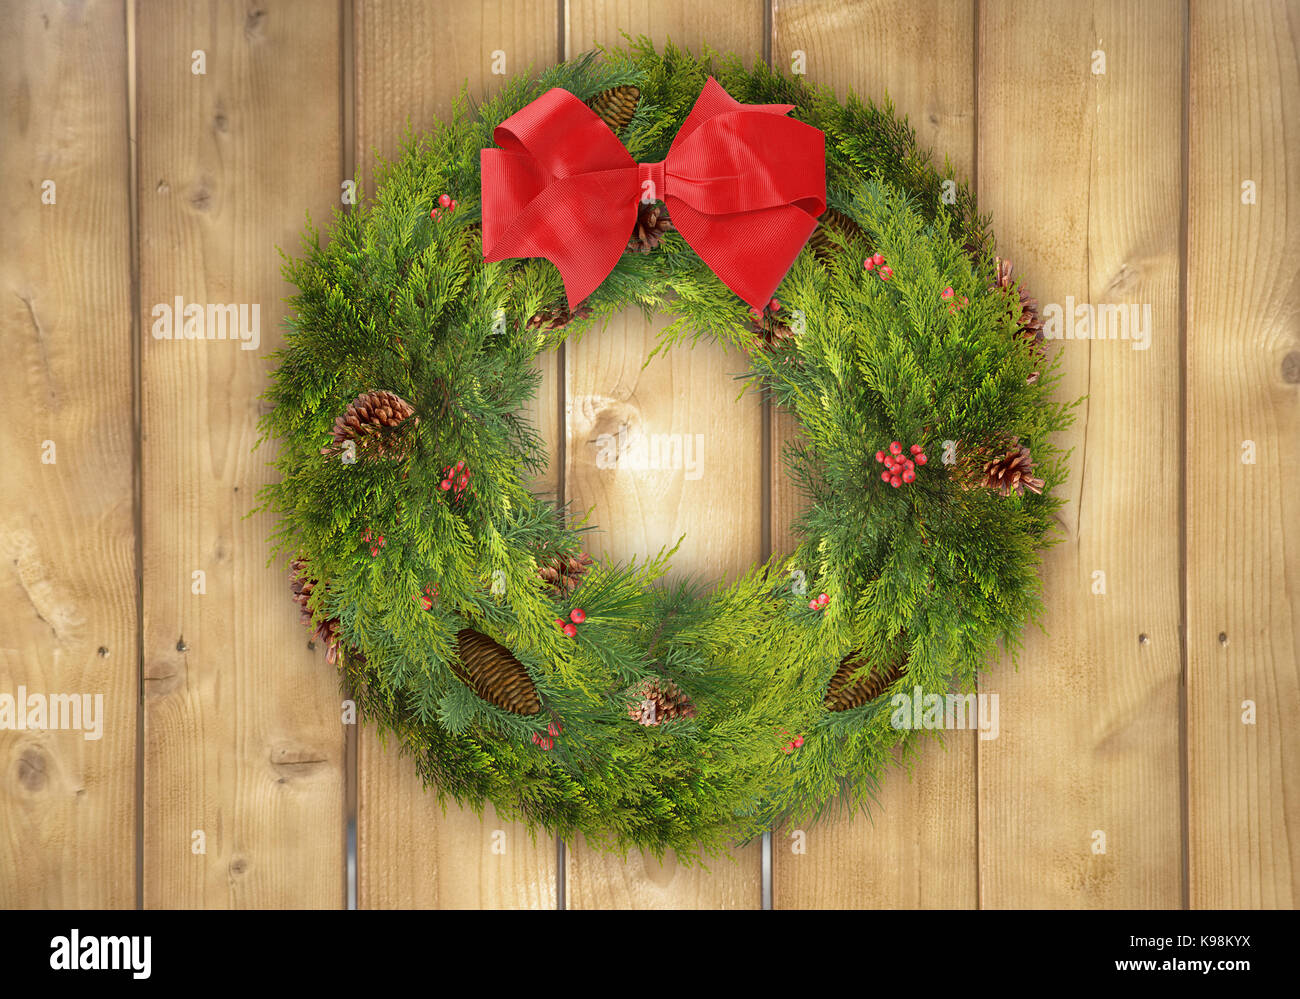 Rustic Christmas Background Of A Pine Wreath With Holly Berries And Big Red Bow On Wood Fence